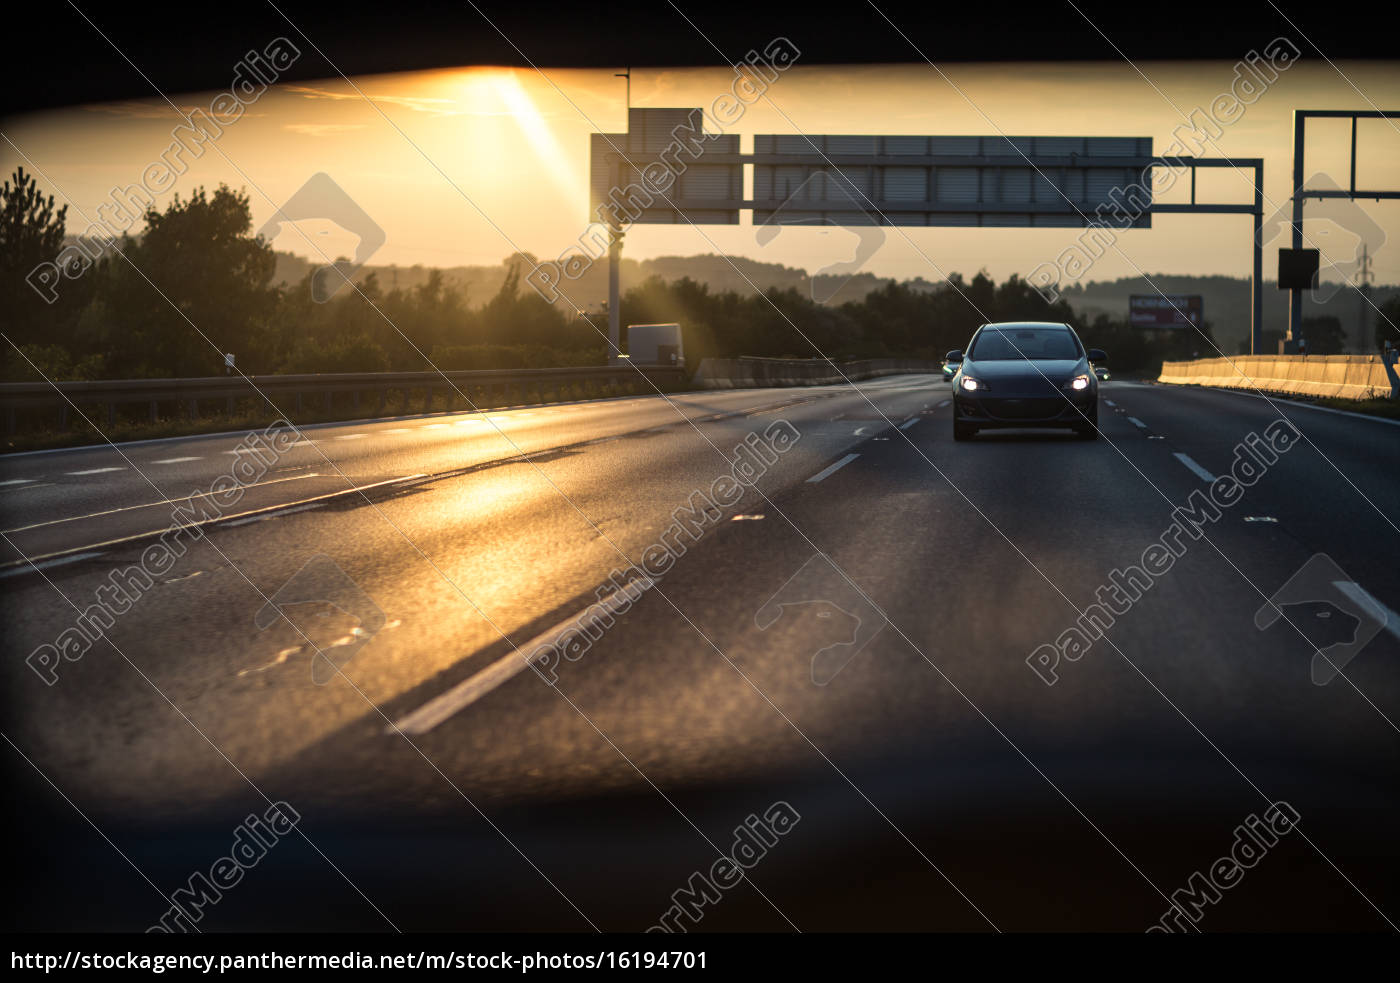 cars, on, a, highway, at, sunset - 16194701